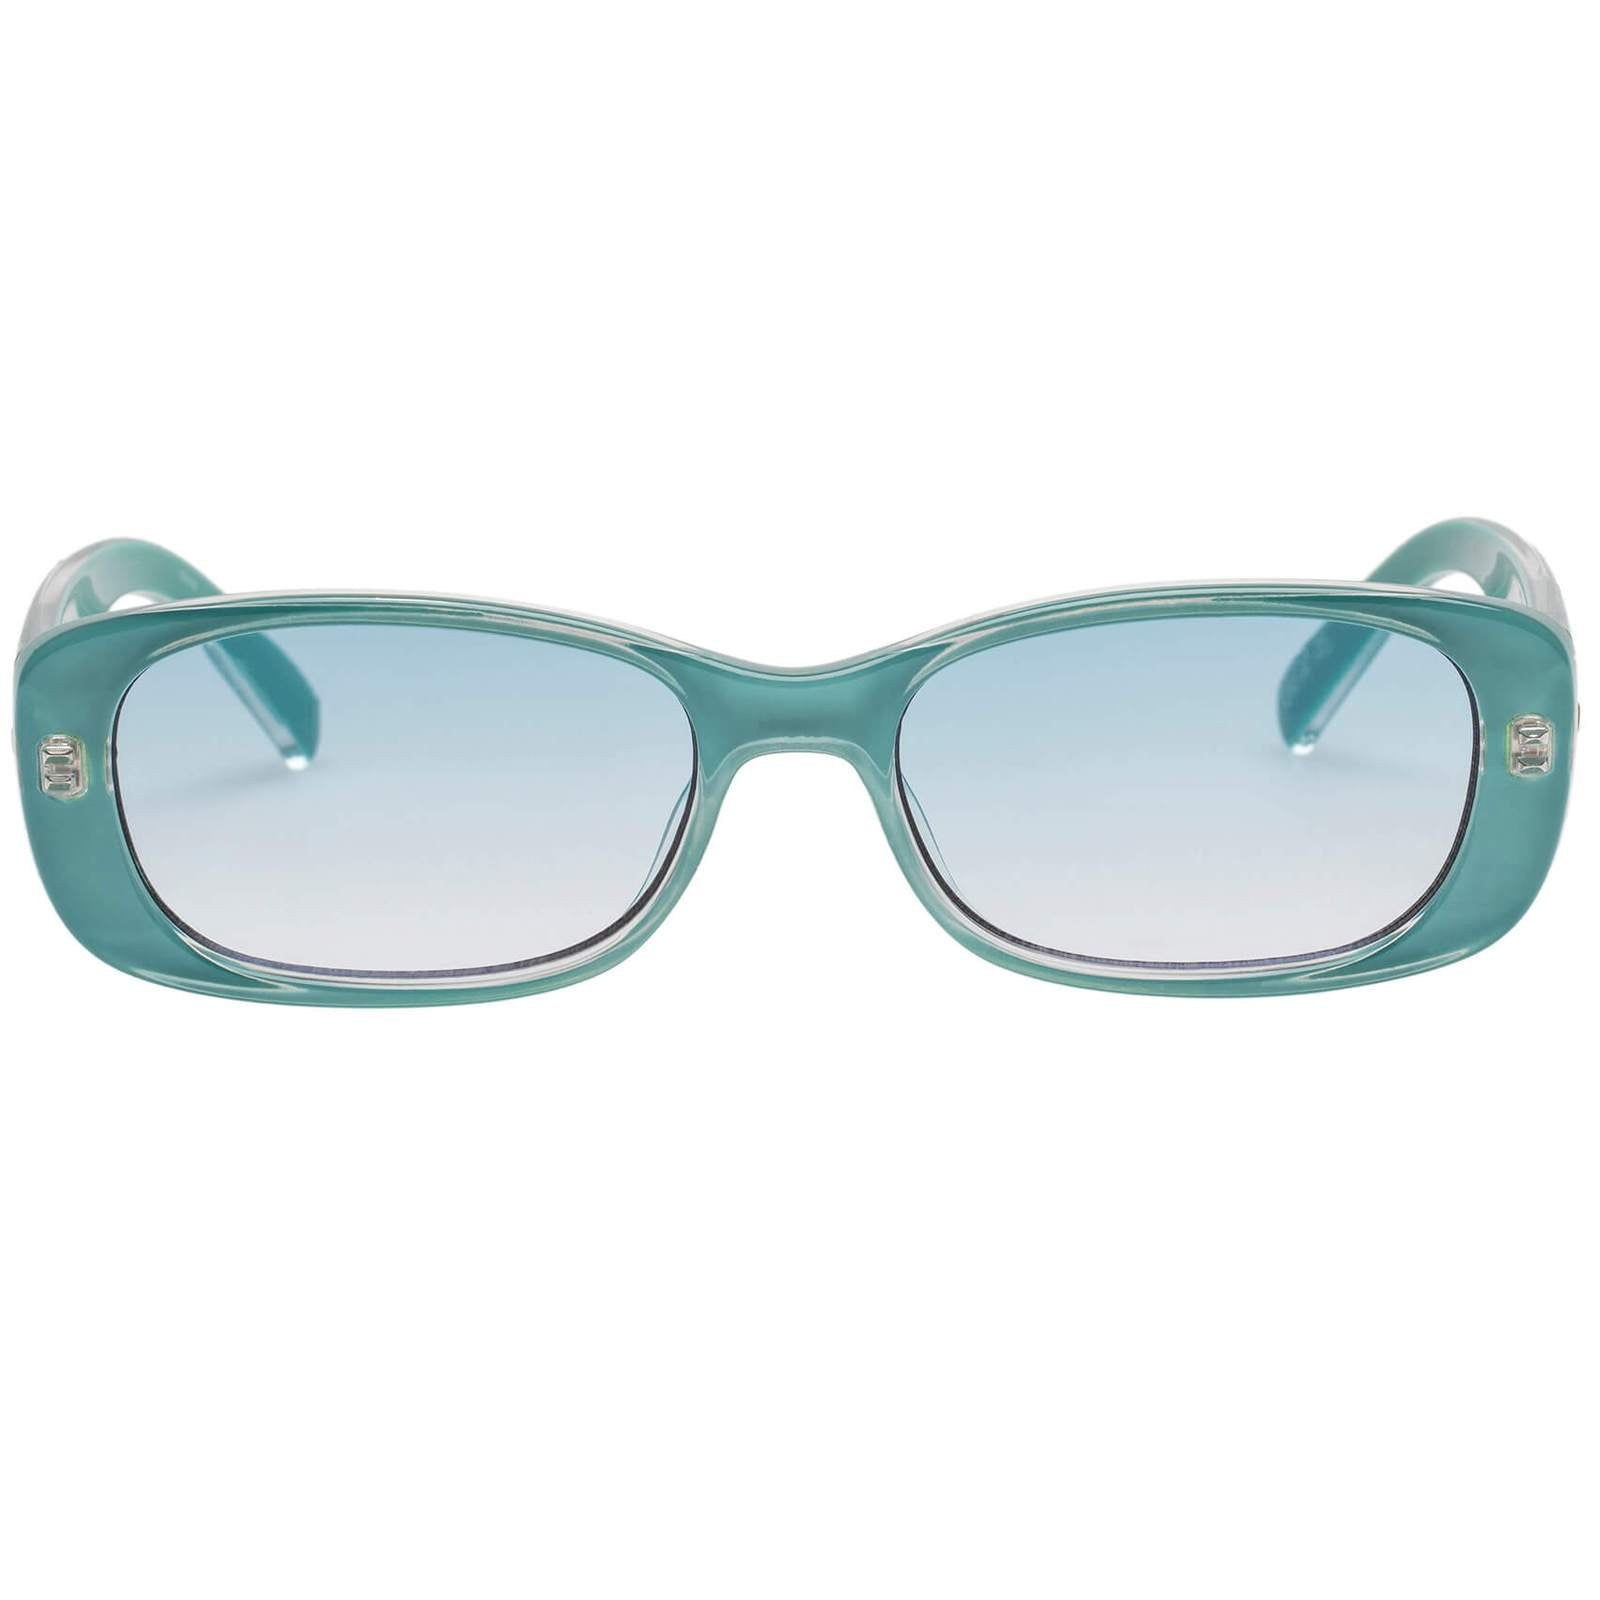 Le Specs Unreal blue Teal Sunglasses